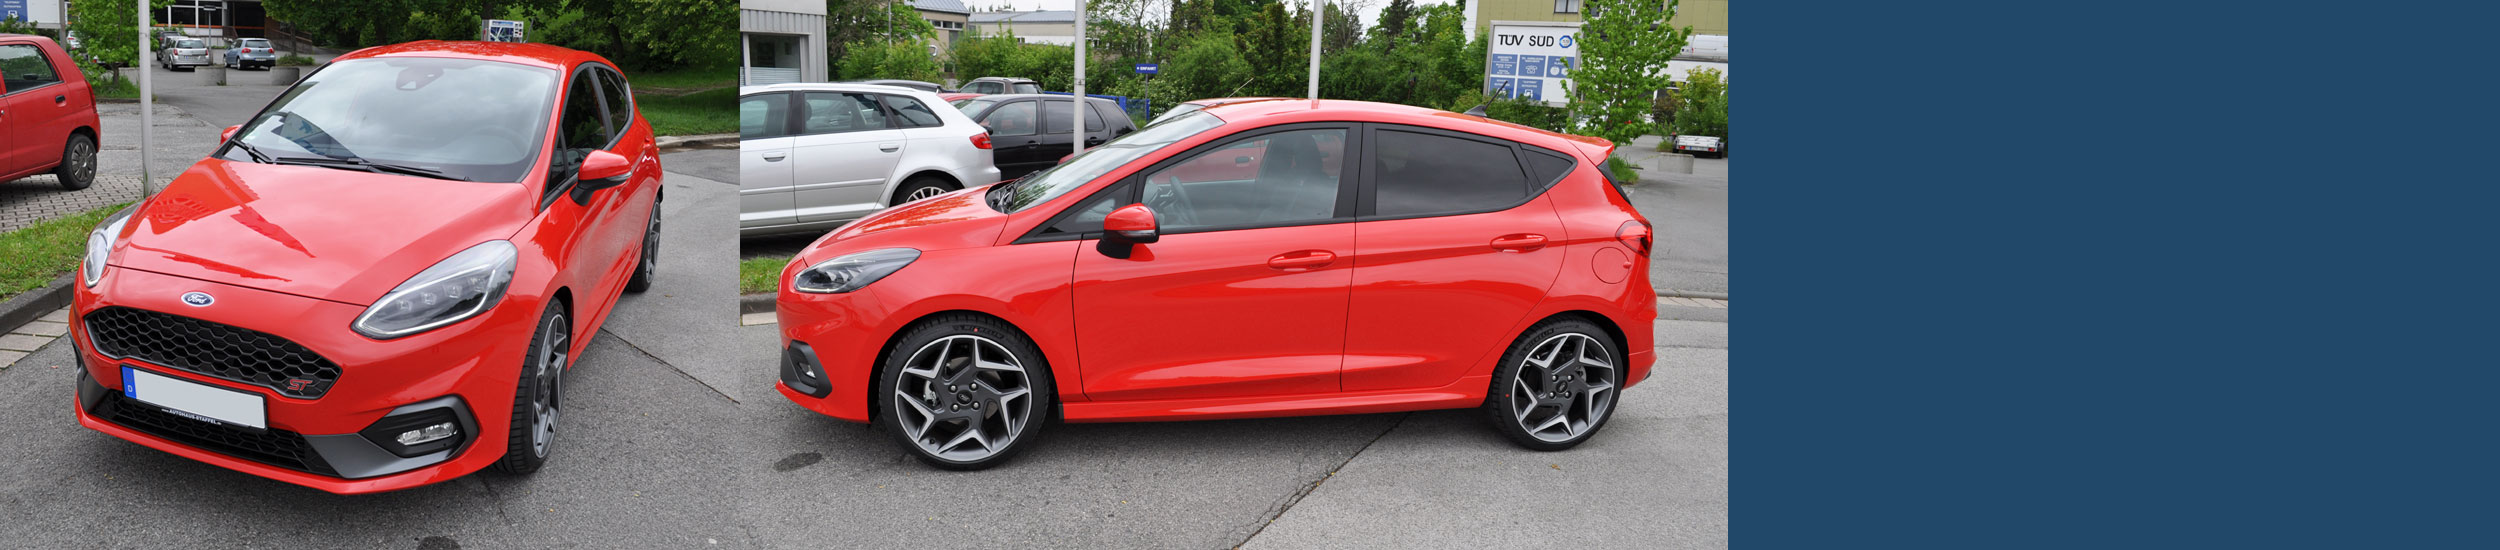 Sparmobile-Ford-Fiesta-ST-2019